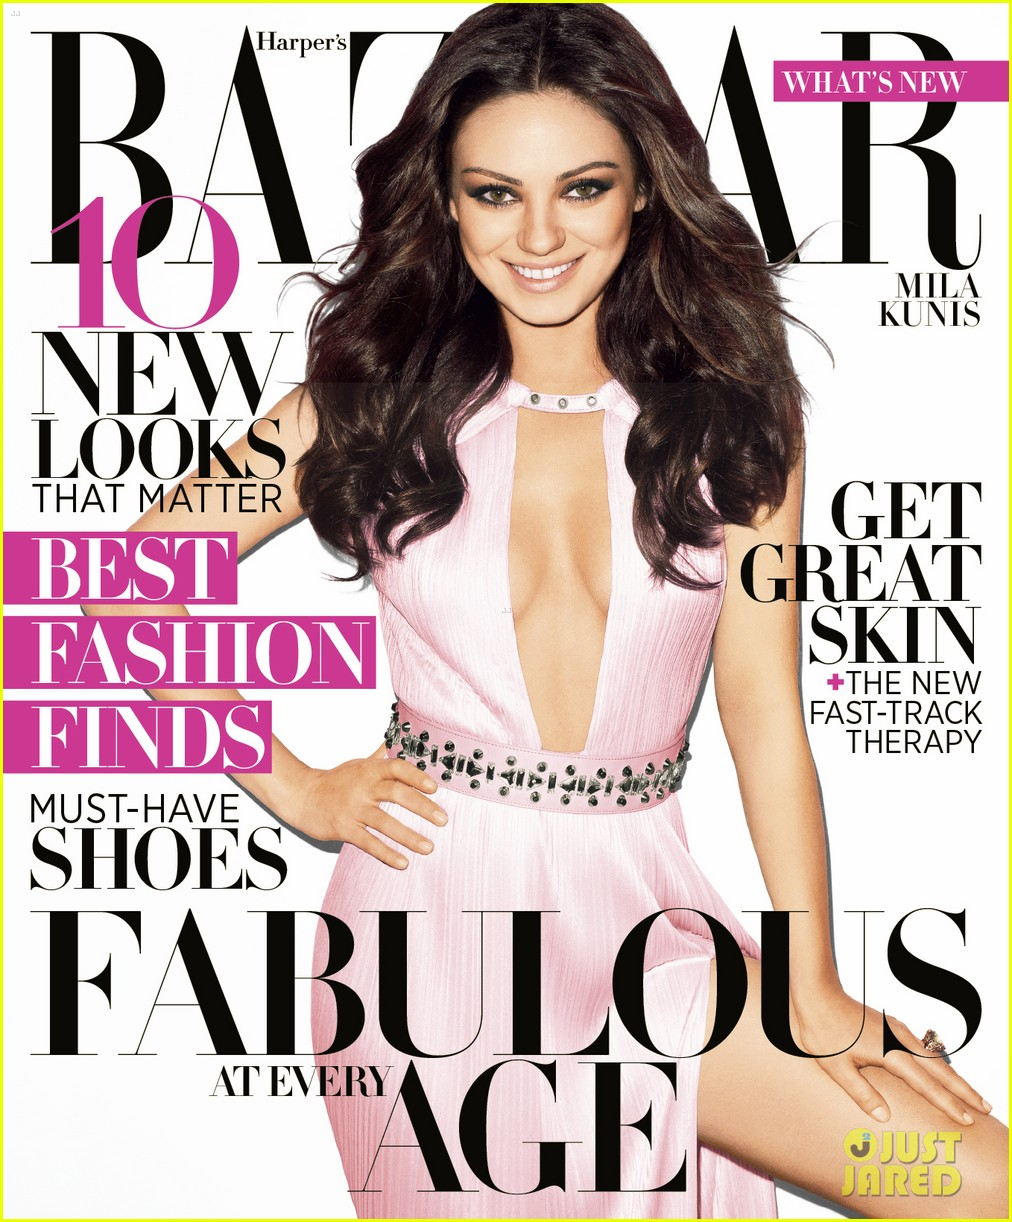 mila kunis harpers bazaar april 2012 02